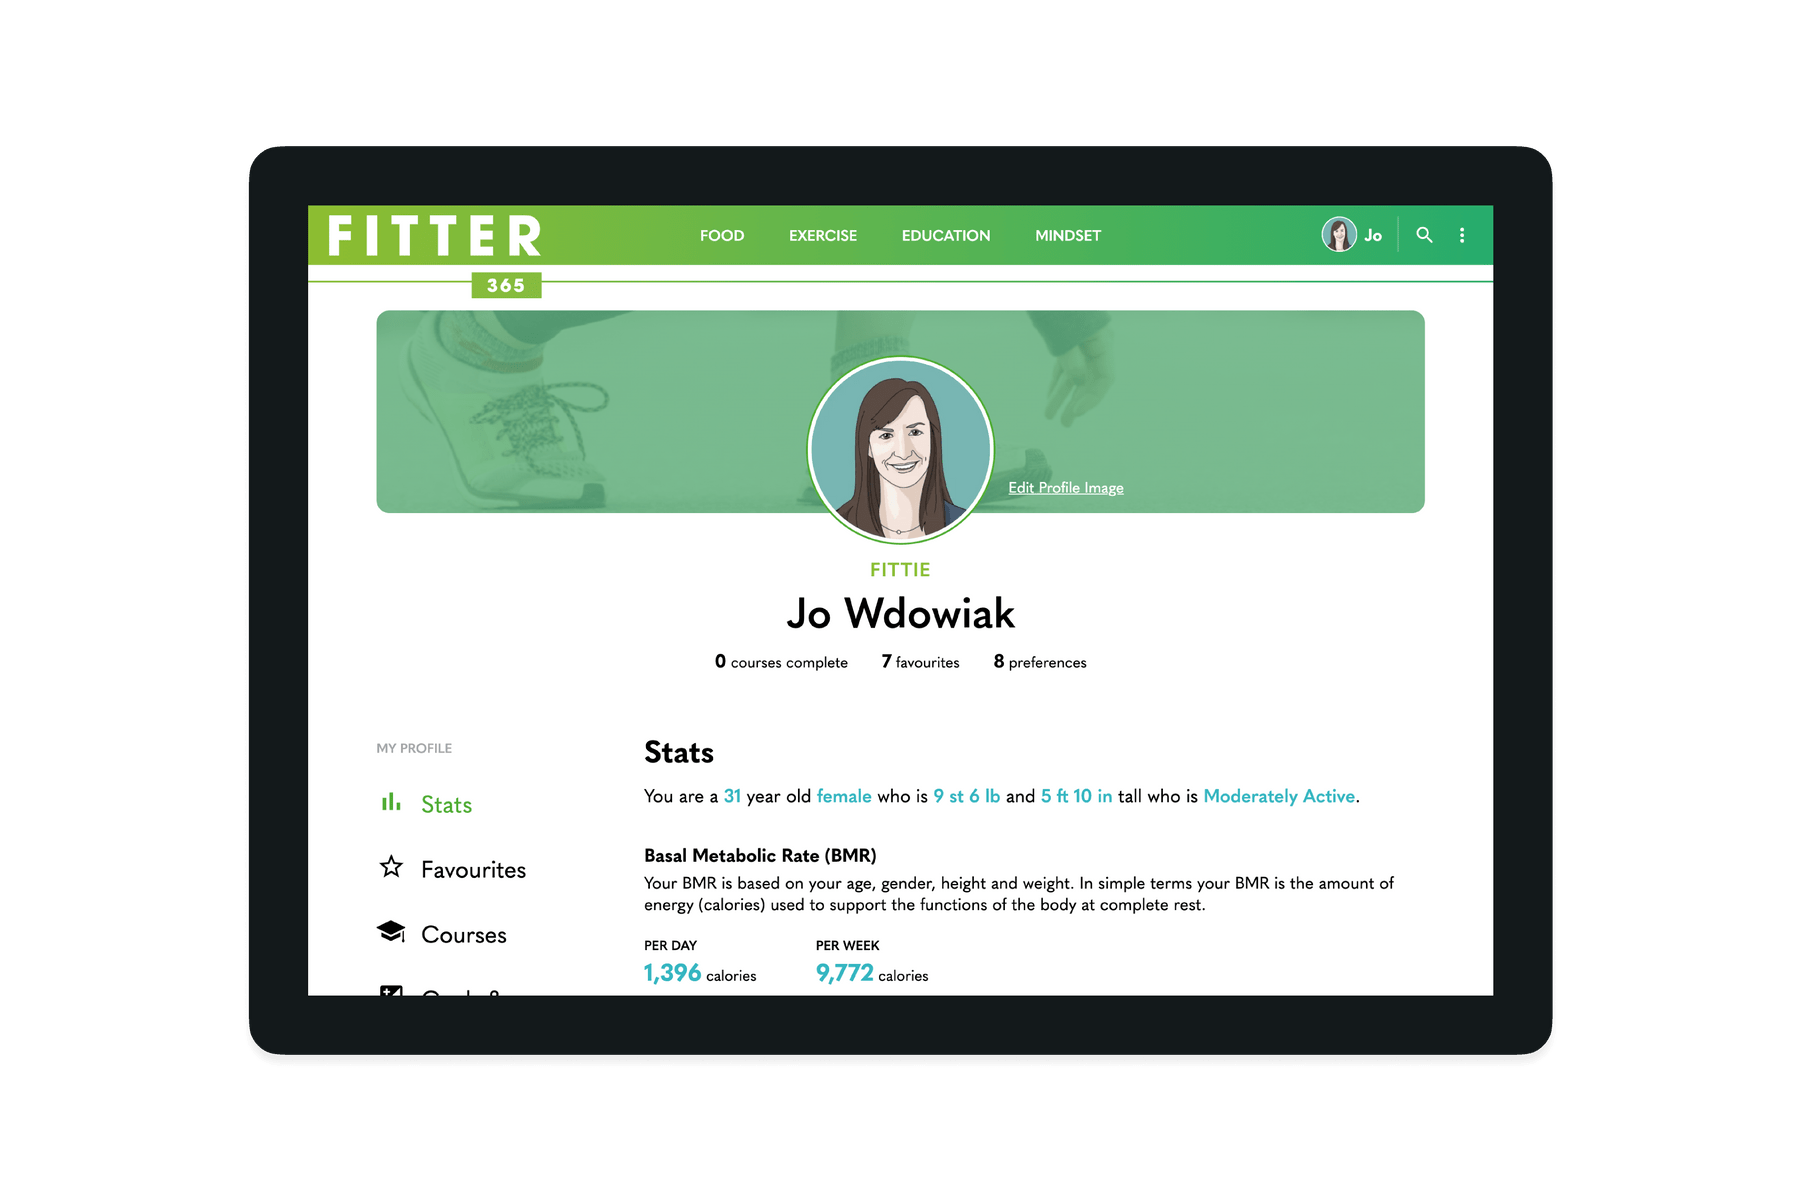 Tablet showing the user profile section of the Fitter 365 website